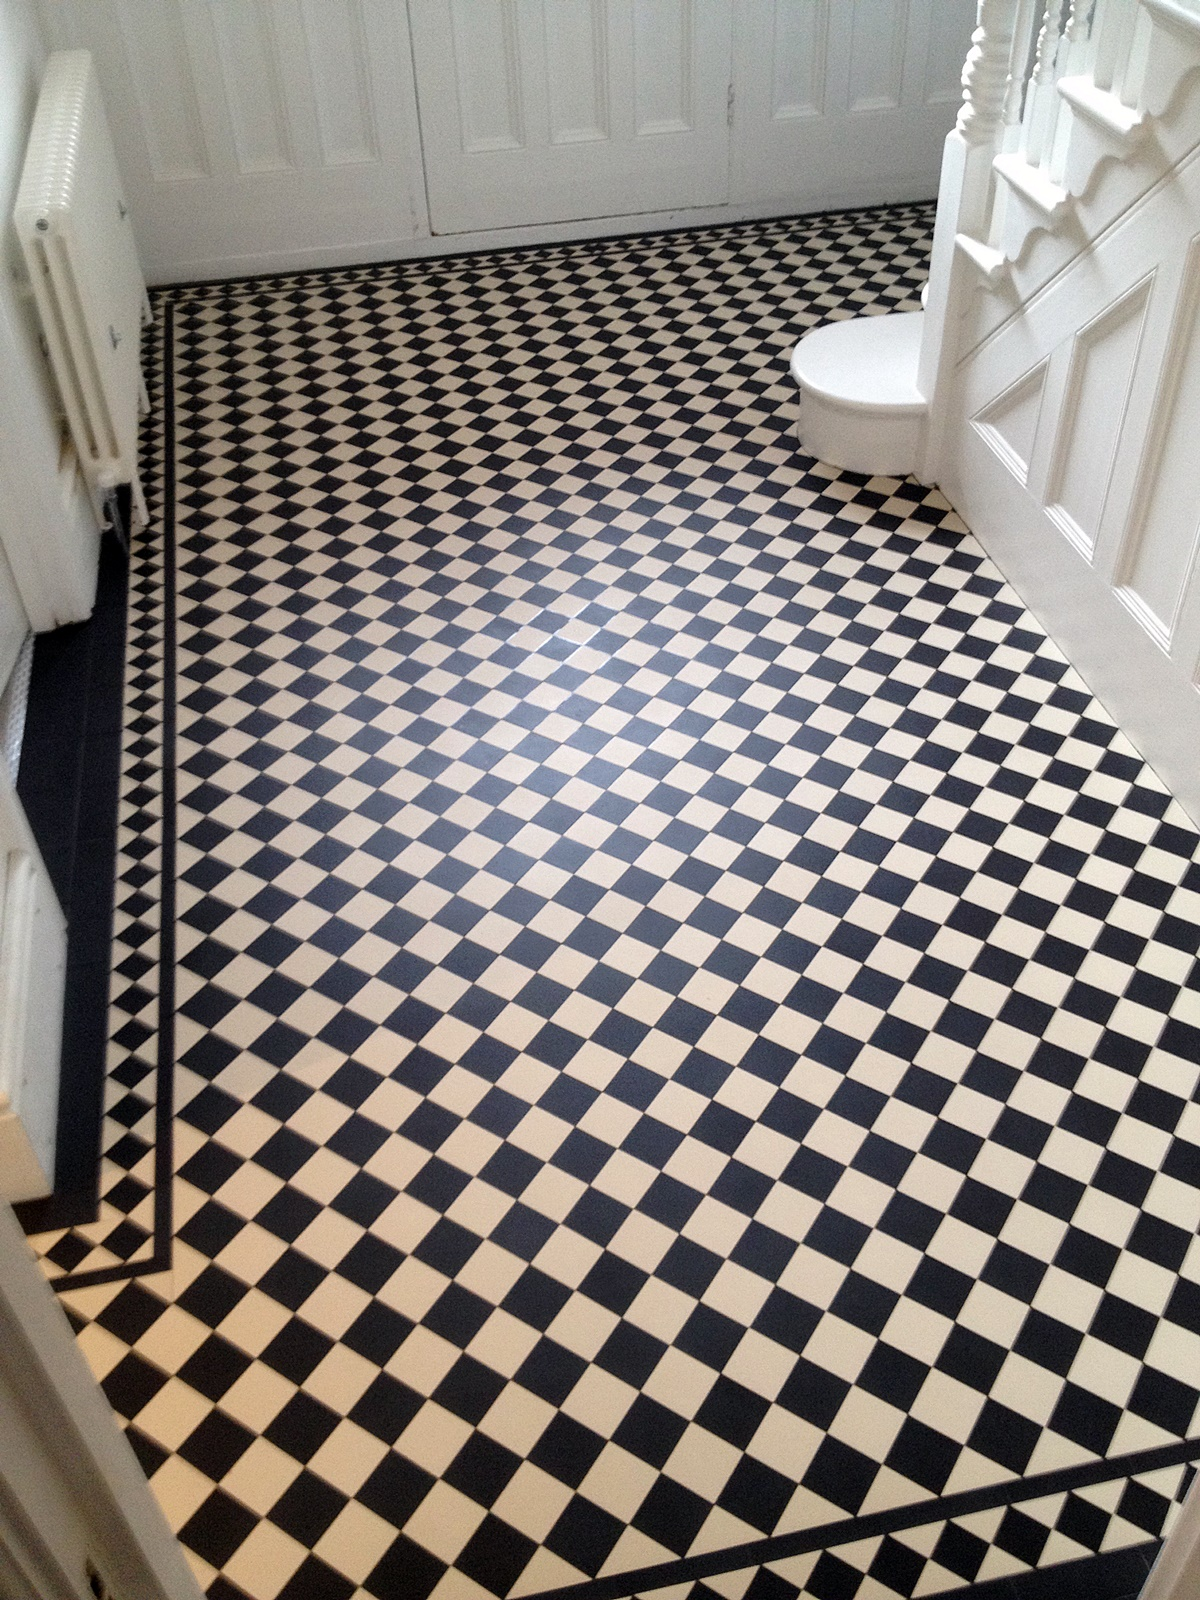 Victorian black and white hallway tile mosaic floor balham clapham battersea chelsea kensington london